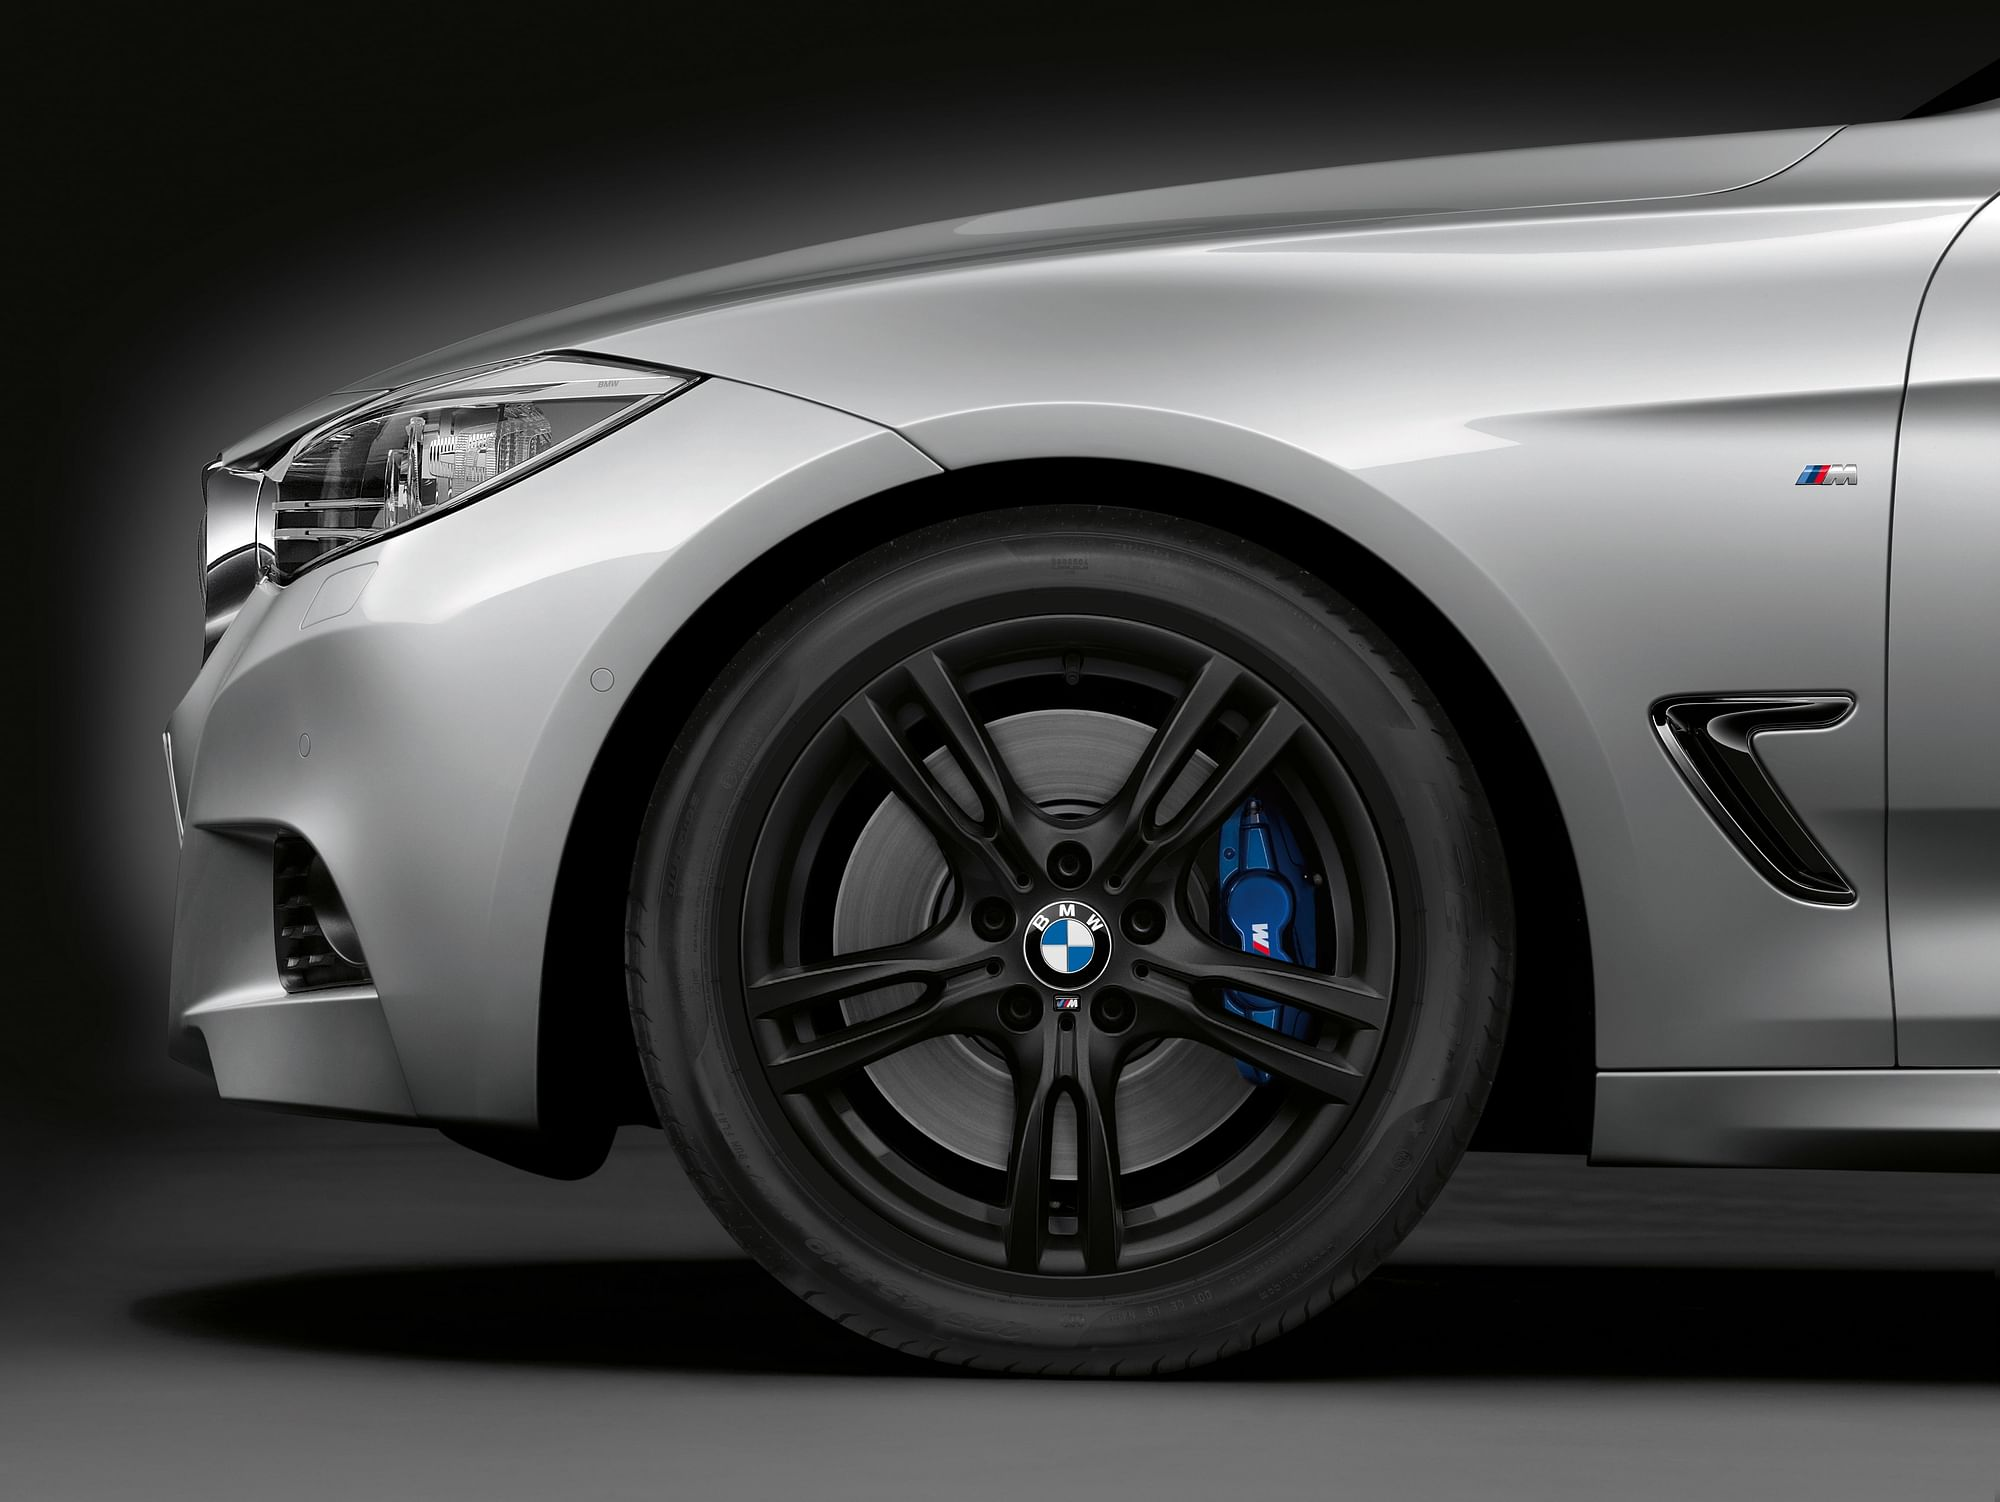 Bmw Launches 3 Series Gran Turismo Shadow Edition At Rs 42 5 Lakh